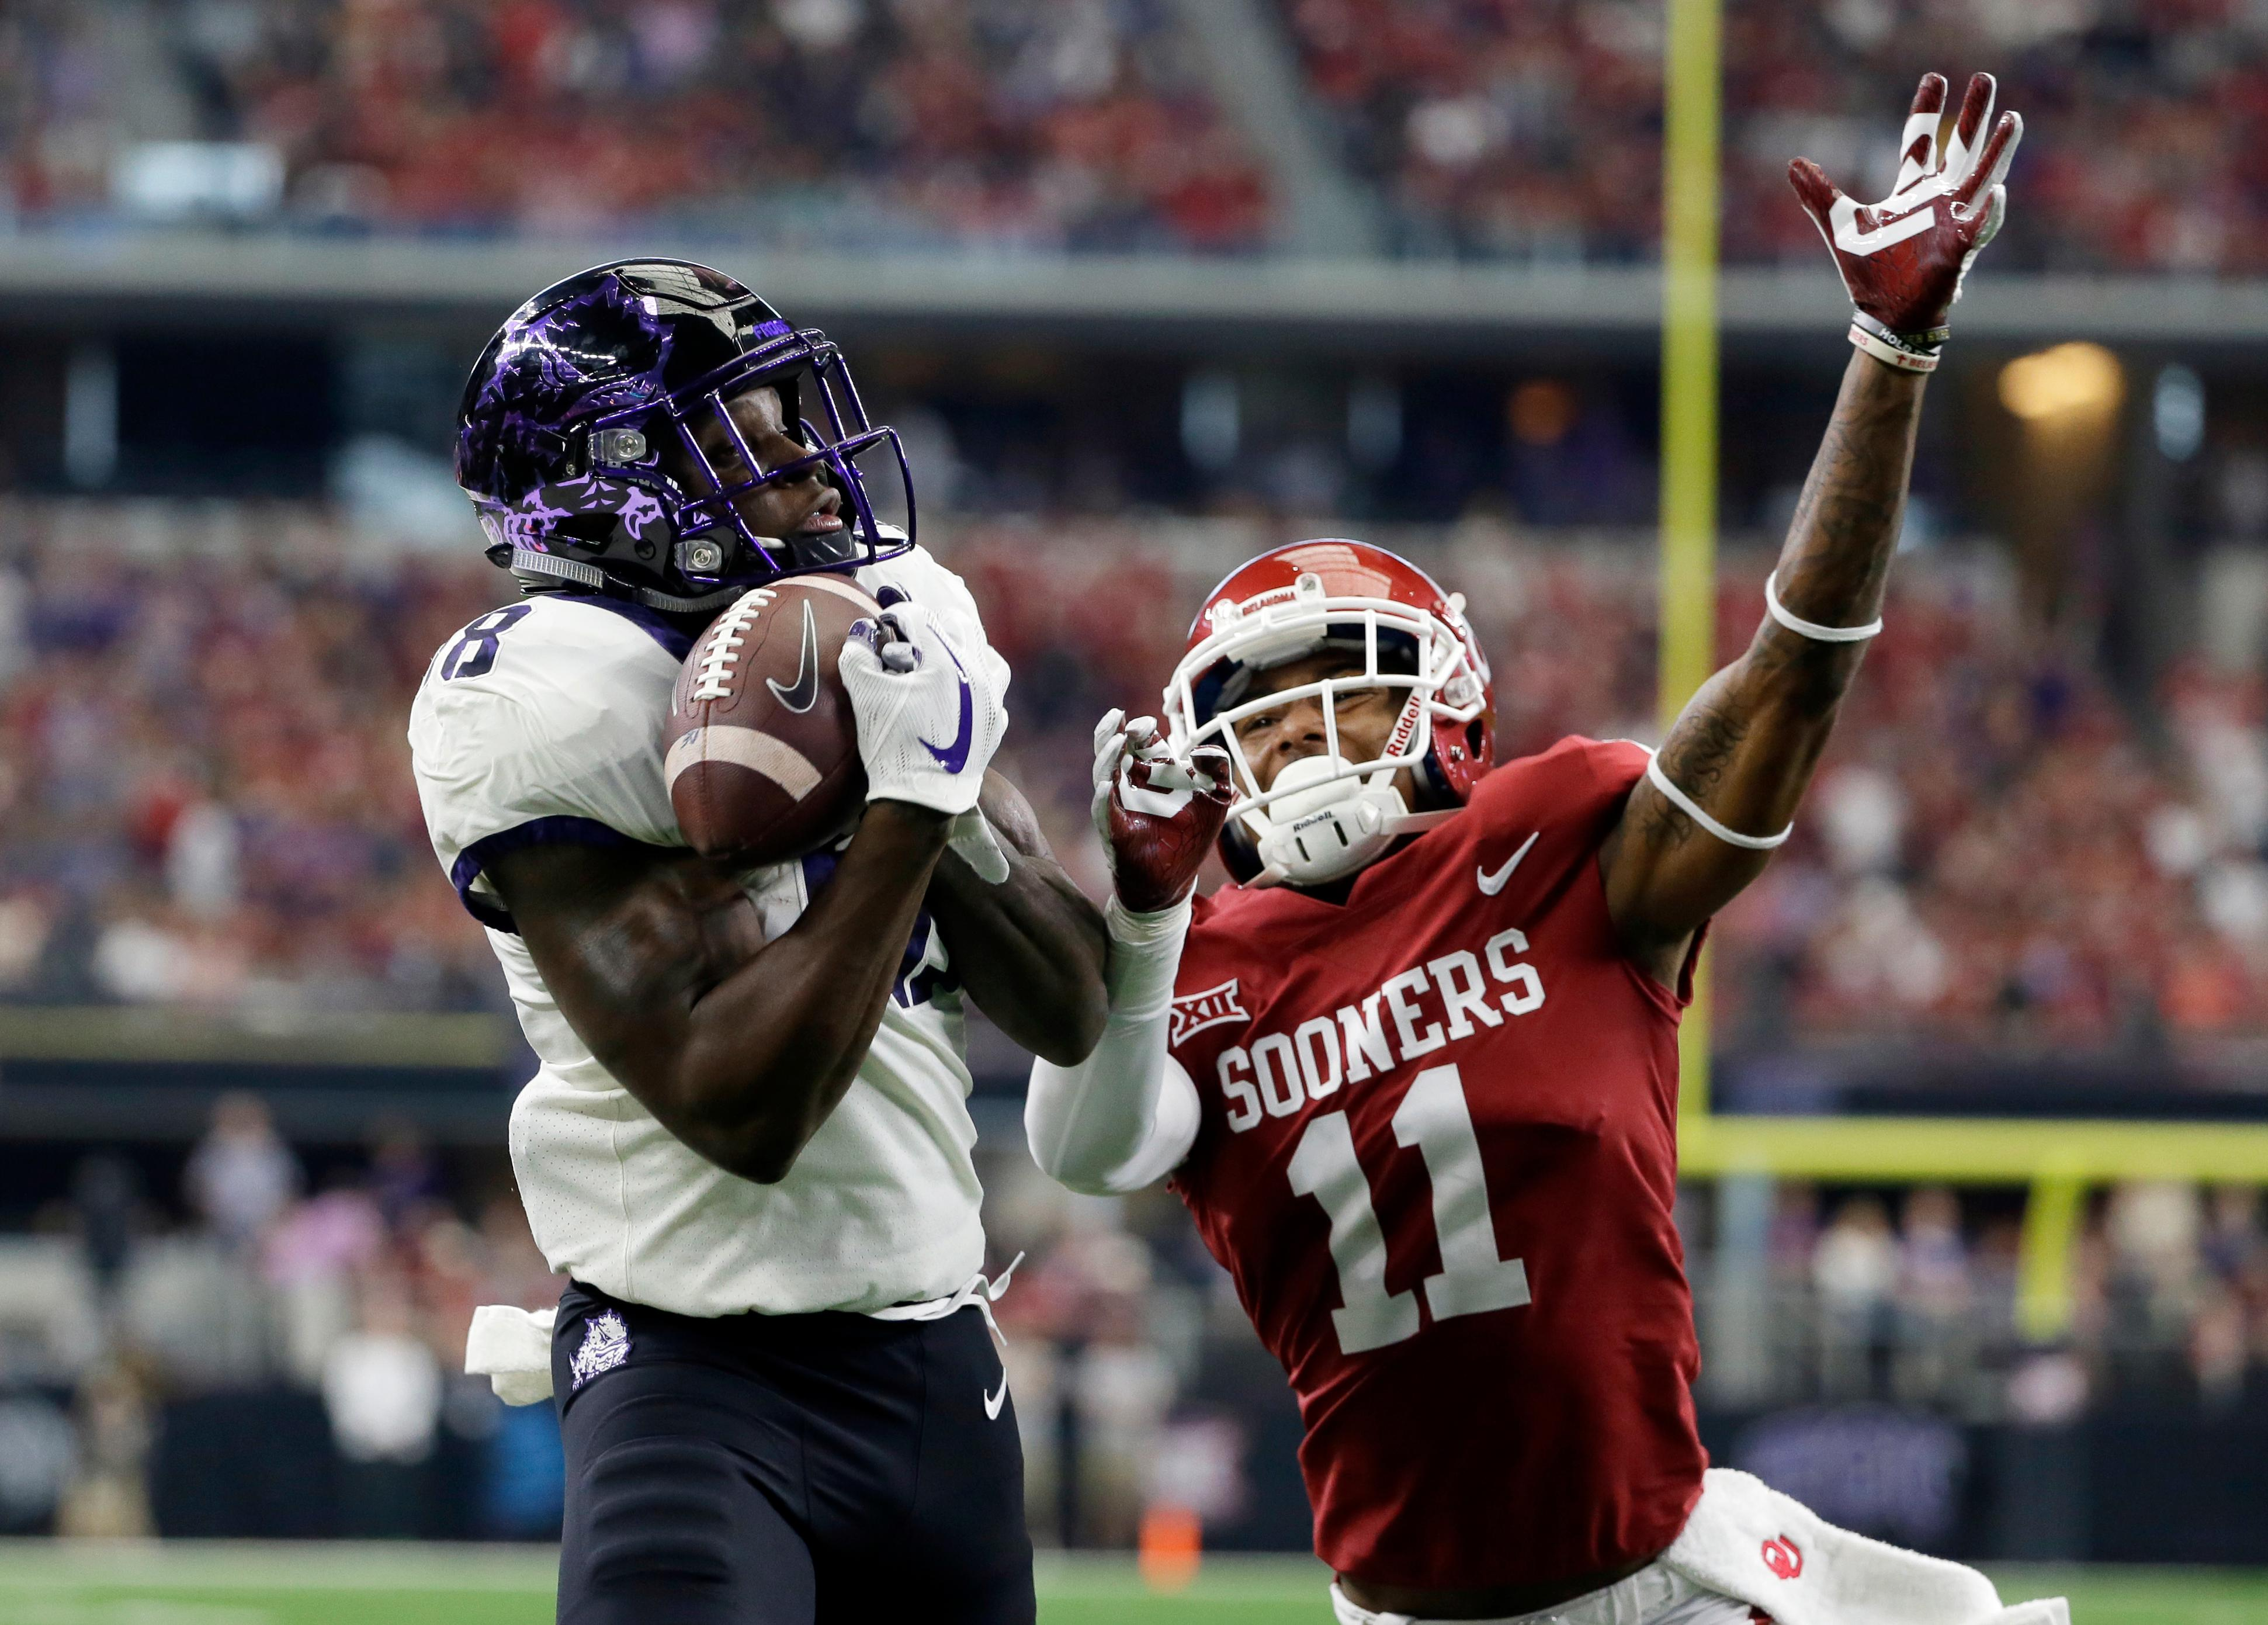 TCU wide receiver Jalen Reagor (18) catches a touchdown pass in front to Oklahoma cornerback Parnell Motley (11) in the first half of the Big 12 Conference championship NCAA college football game, Saturday, Dec. 2, 2017, in Arlington, Texas. (AP Photo/Tony Gutierrez)